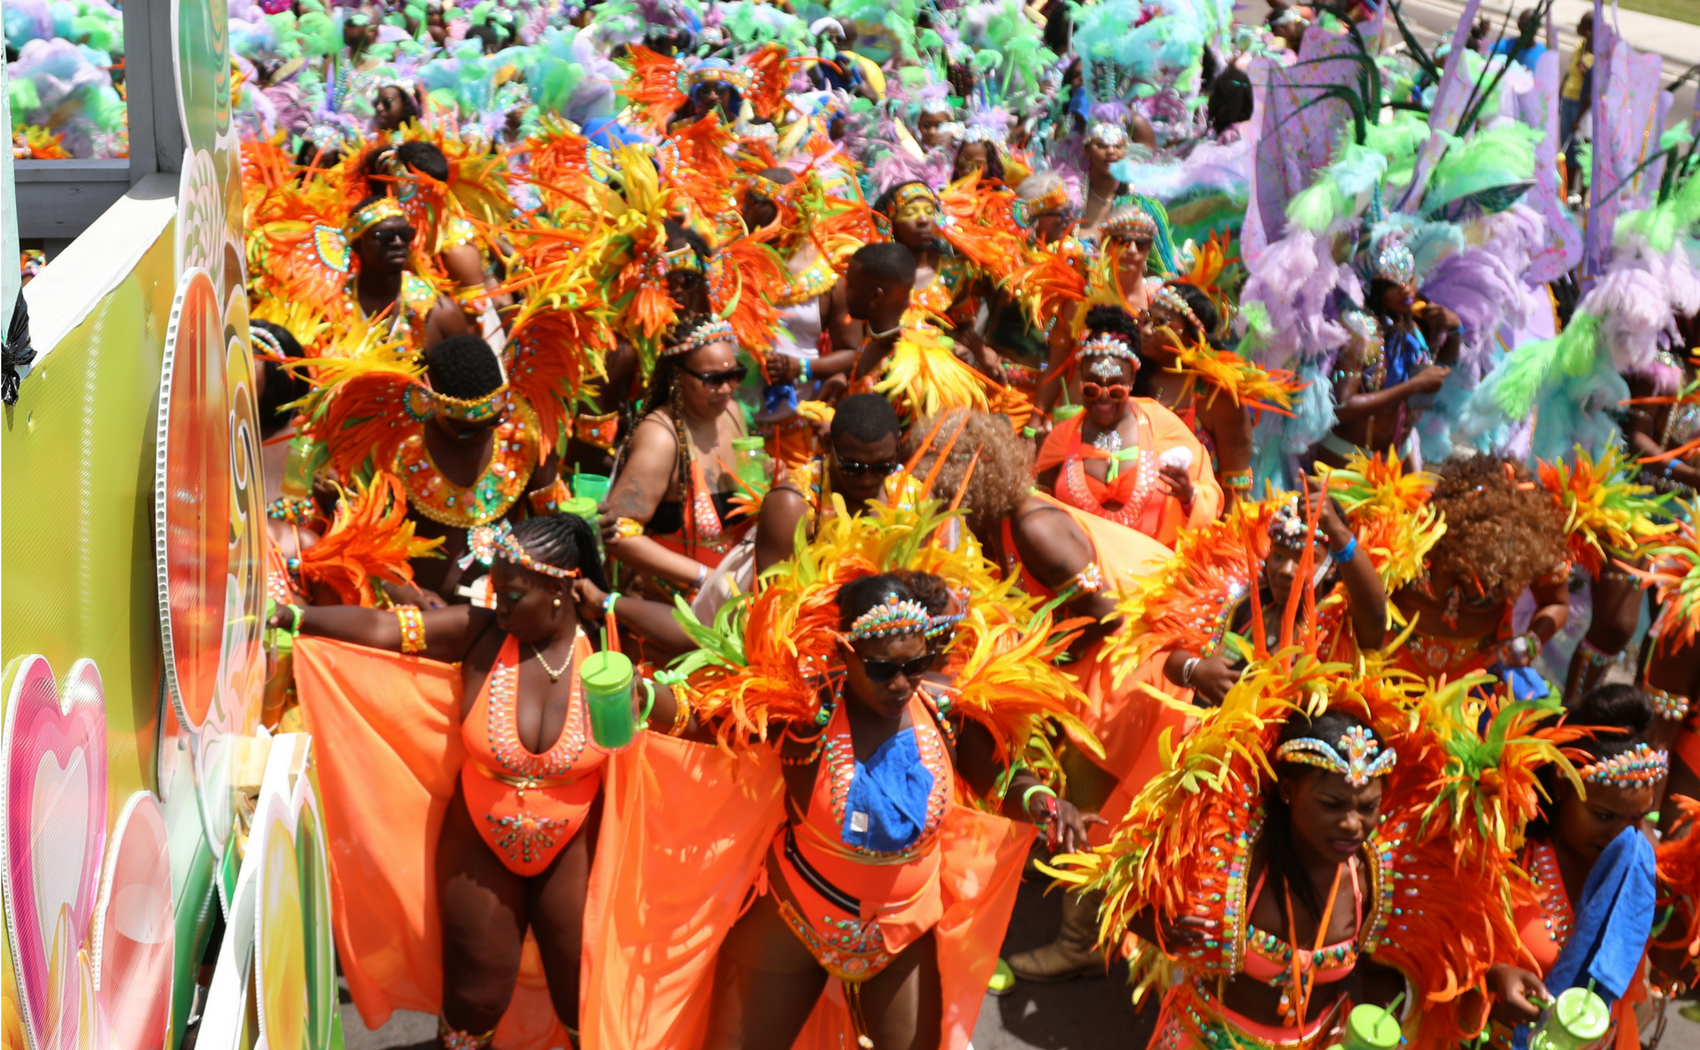 Carnival exec. reports slight loss, says event still hugely successful